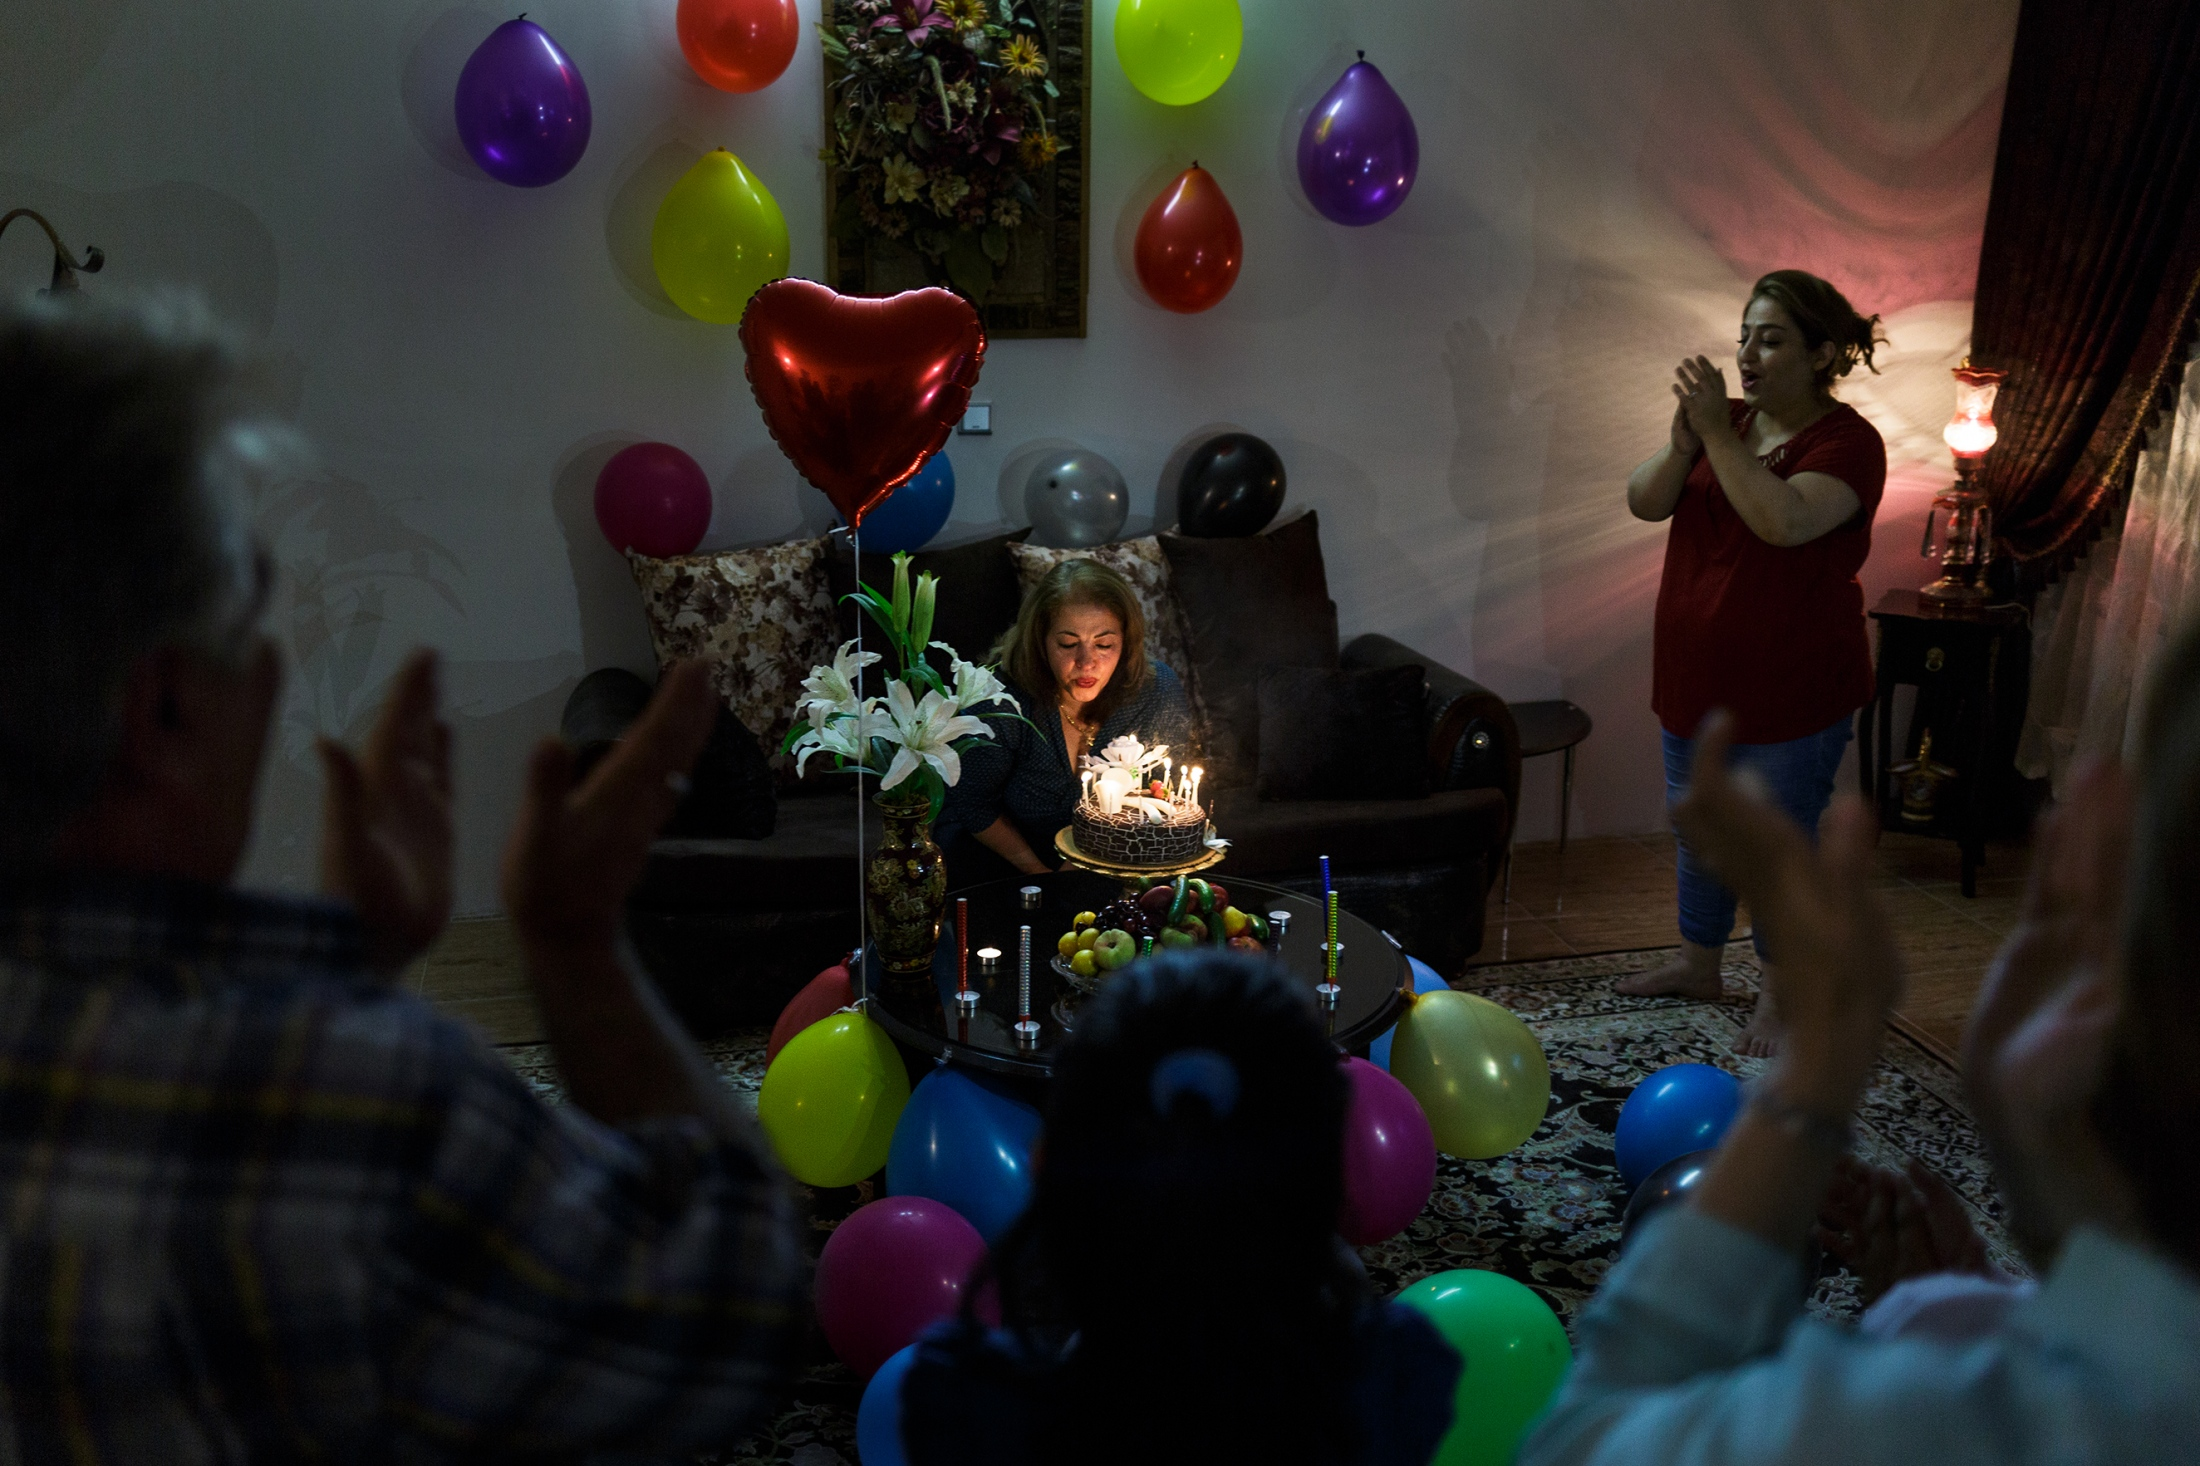 Shahnaz lives in Germany and visits her family in Iran once a year. They celebrate Shahnaz's birthday, which is also her goodbye party. After 13 months, I also have to leave Iran, with the identity that belongs to me and can now rest in me.